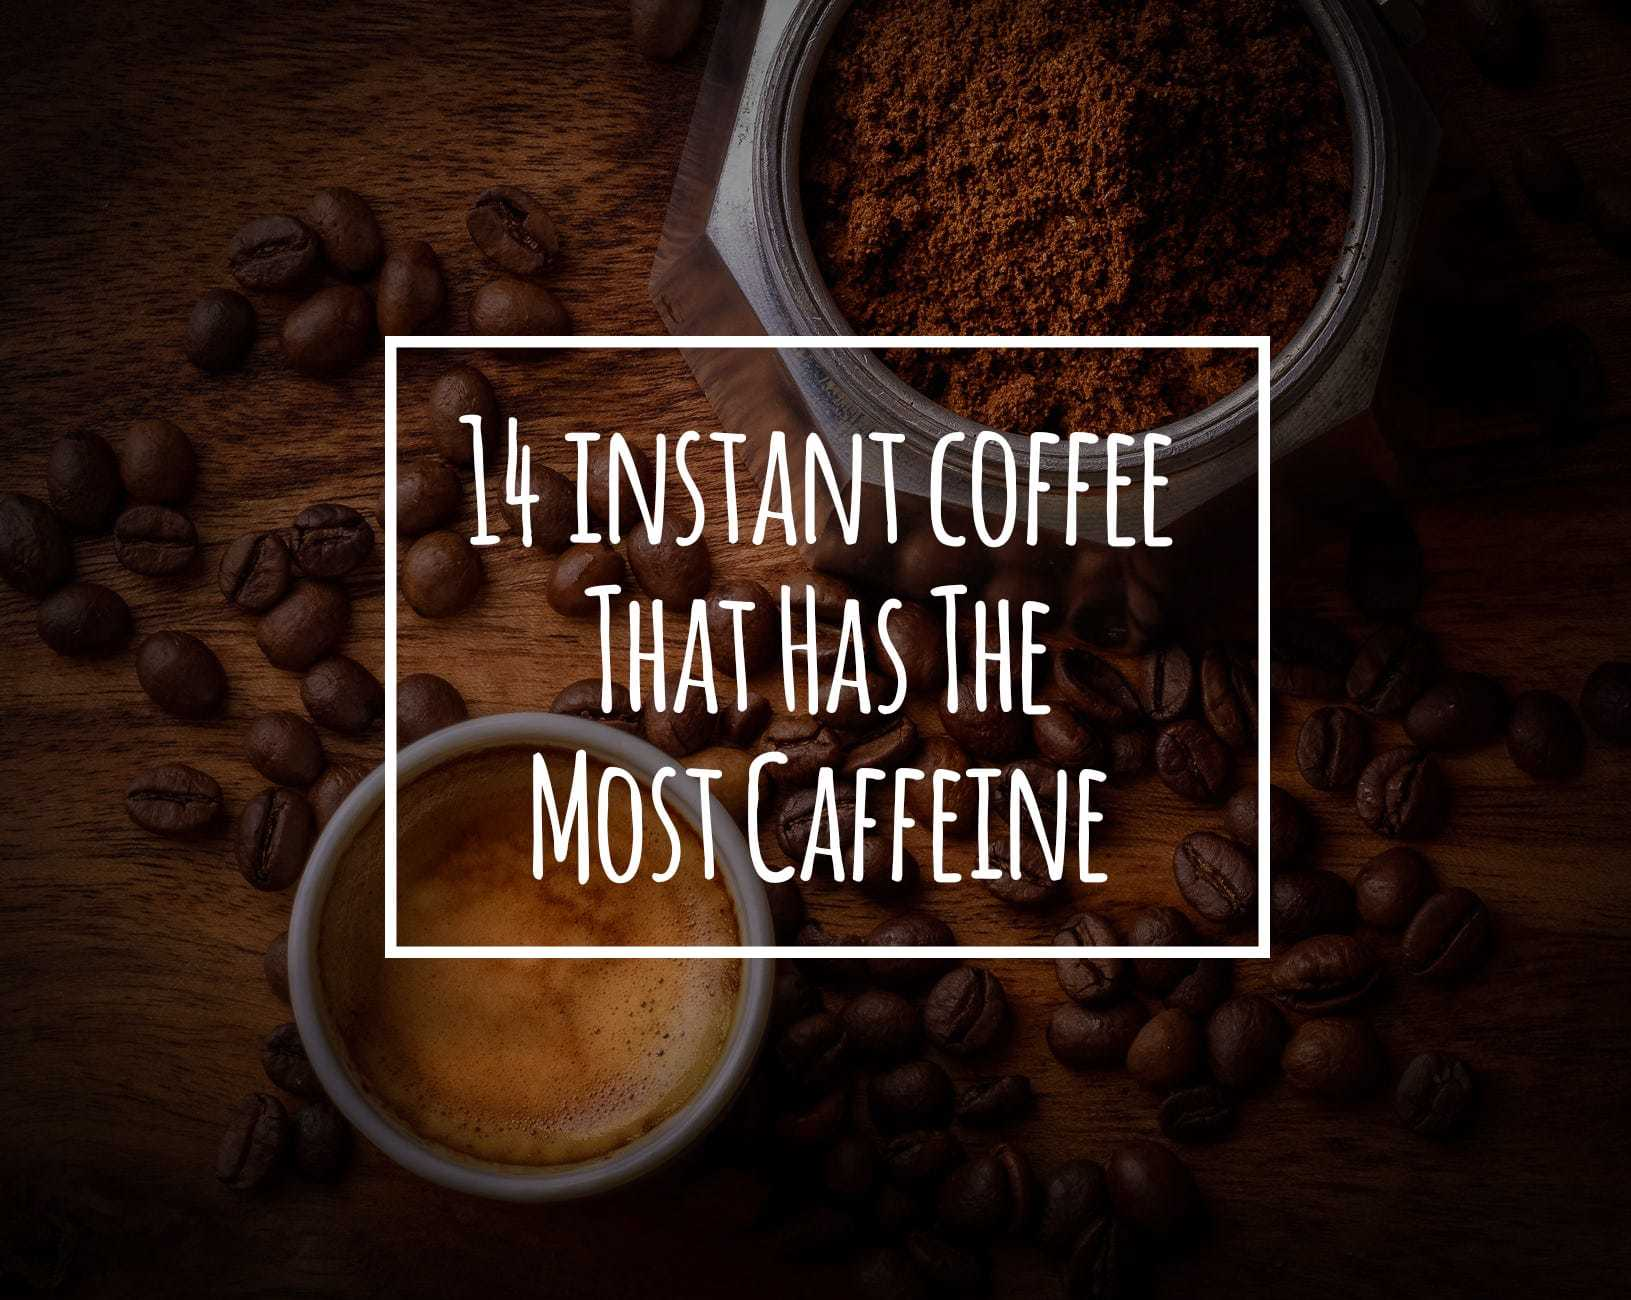 Which Instant Coffee Has The Most Caffeine